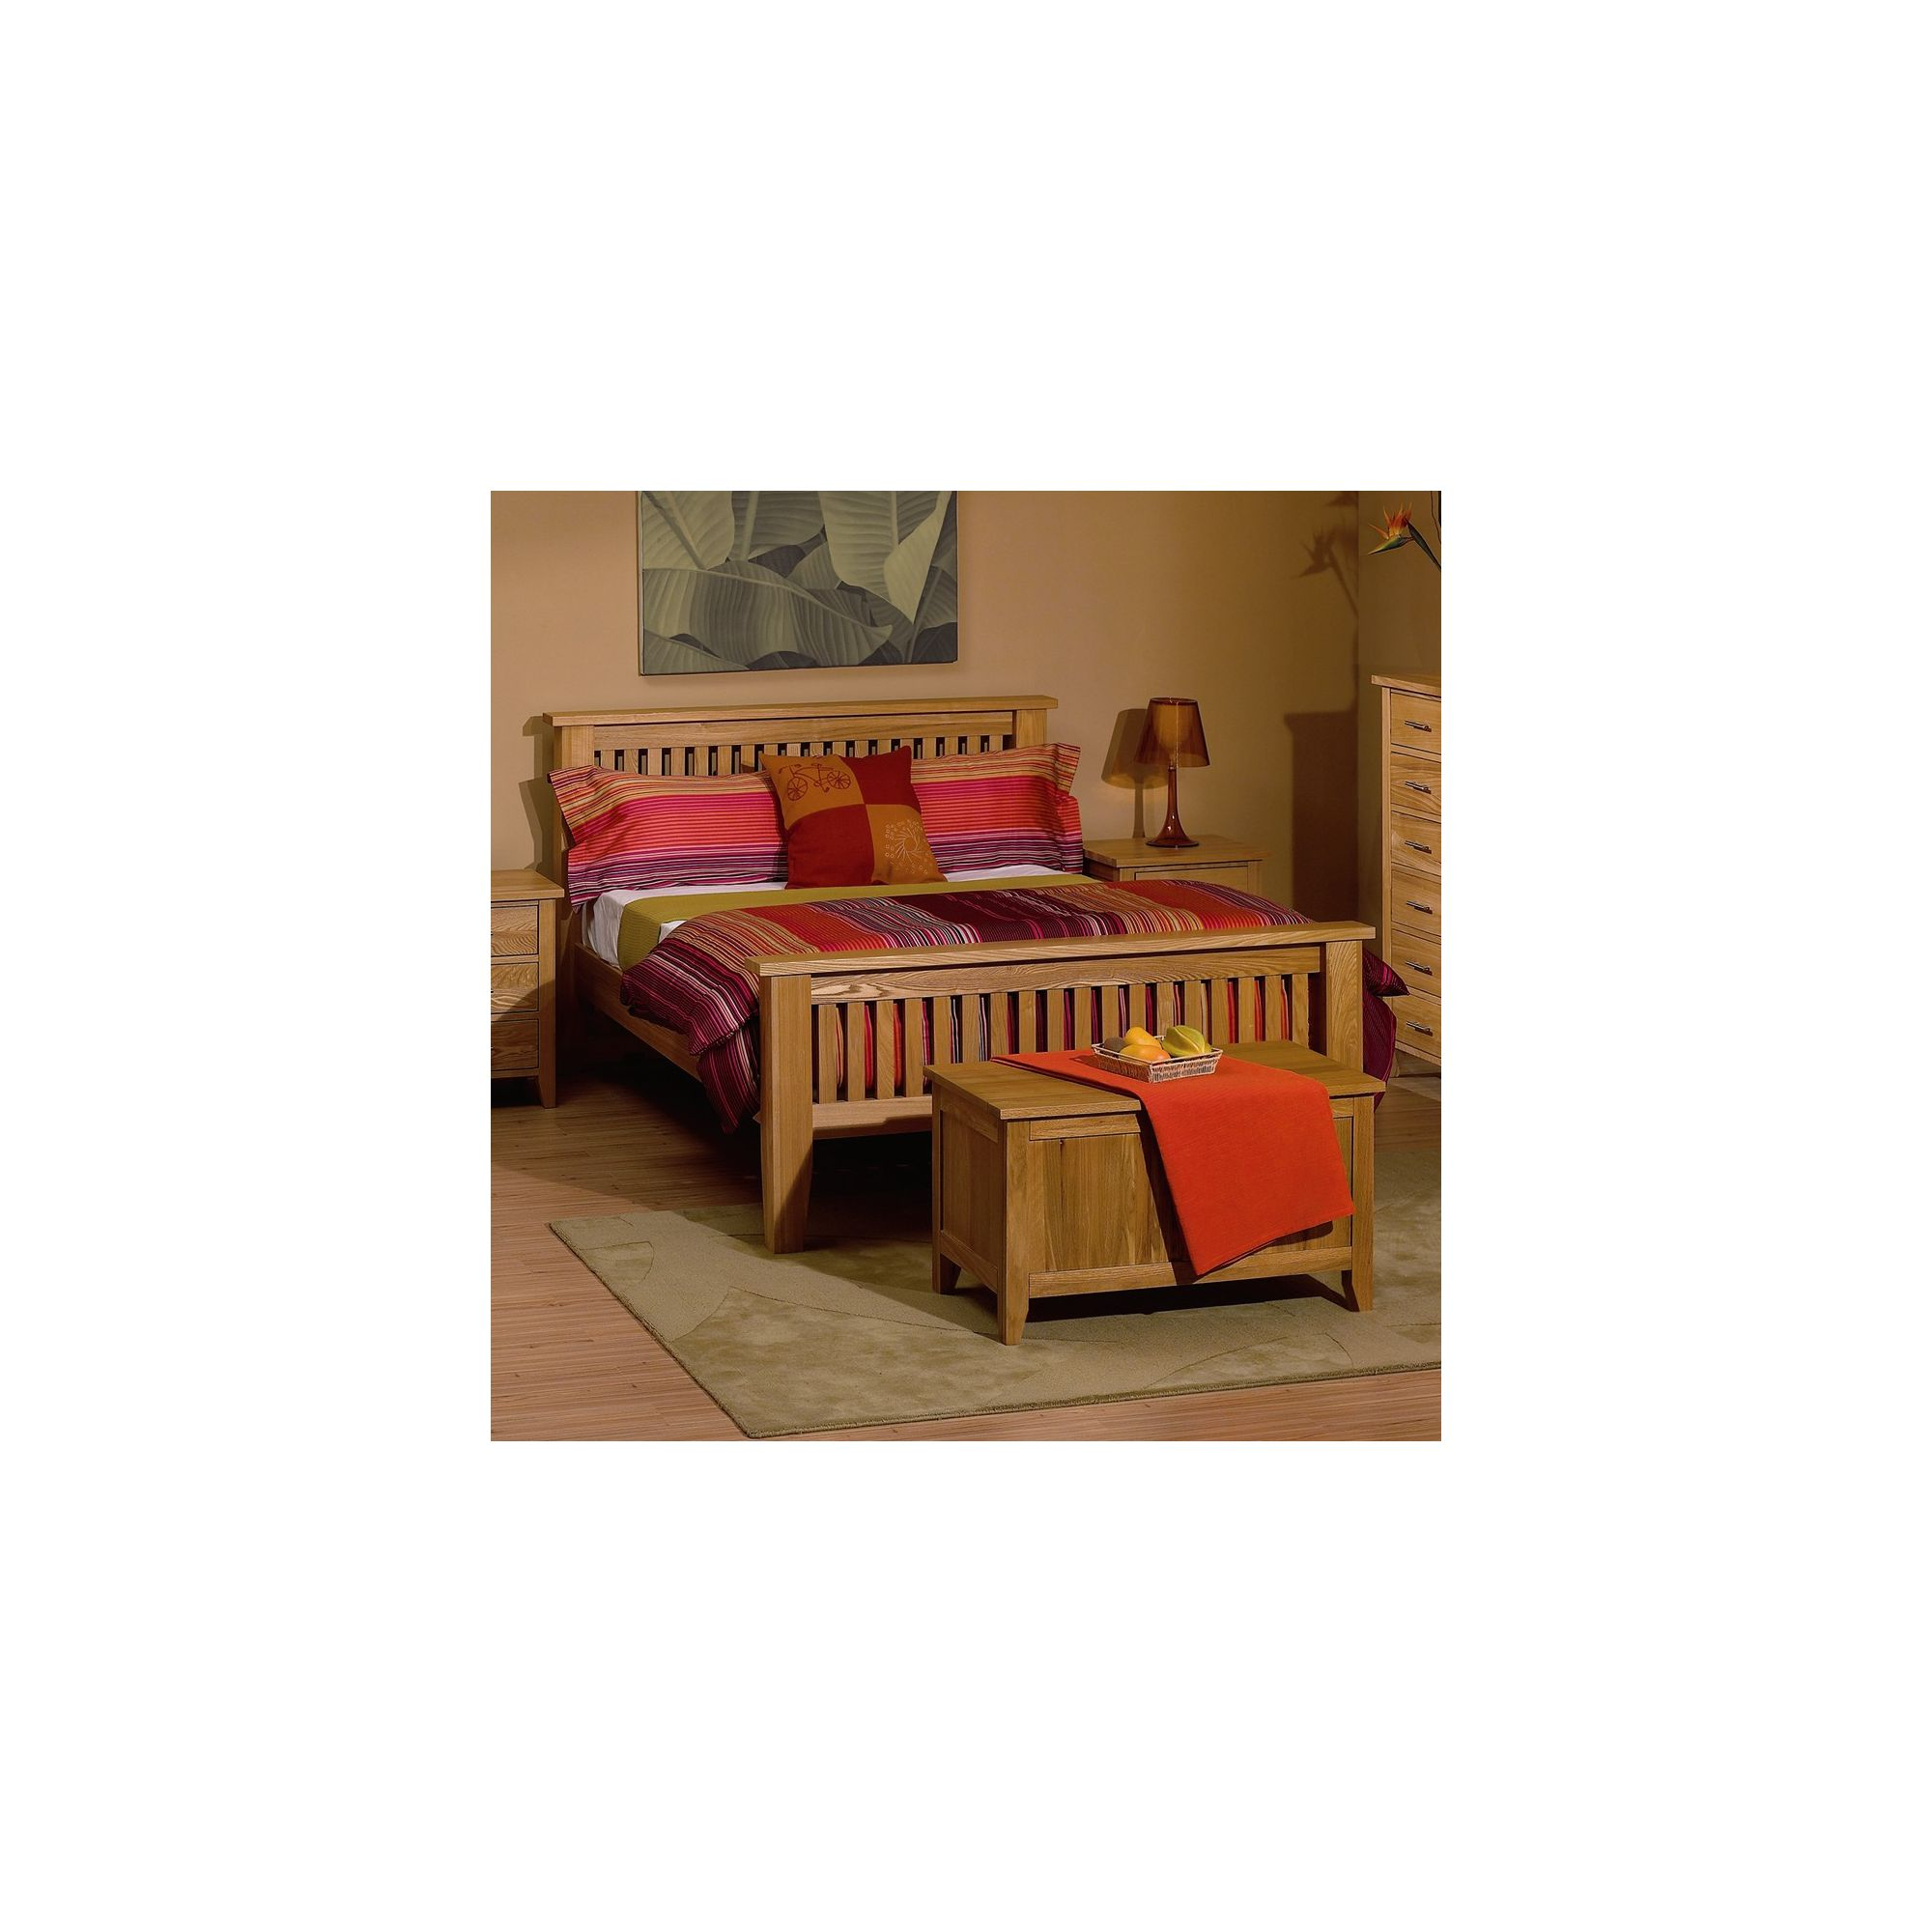 Kelburn Furniture Carlton High Foot End Bed Frame - Double at Tesco Direct